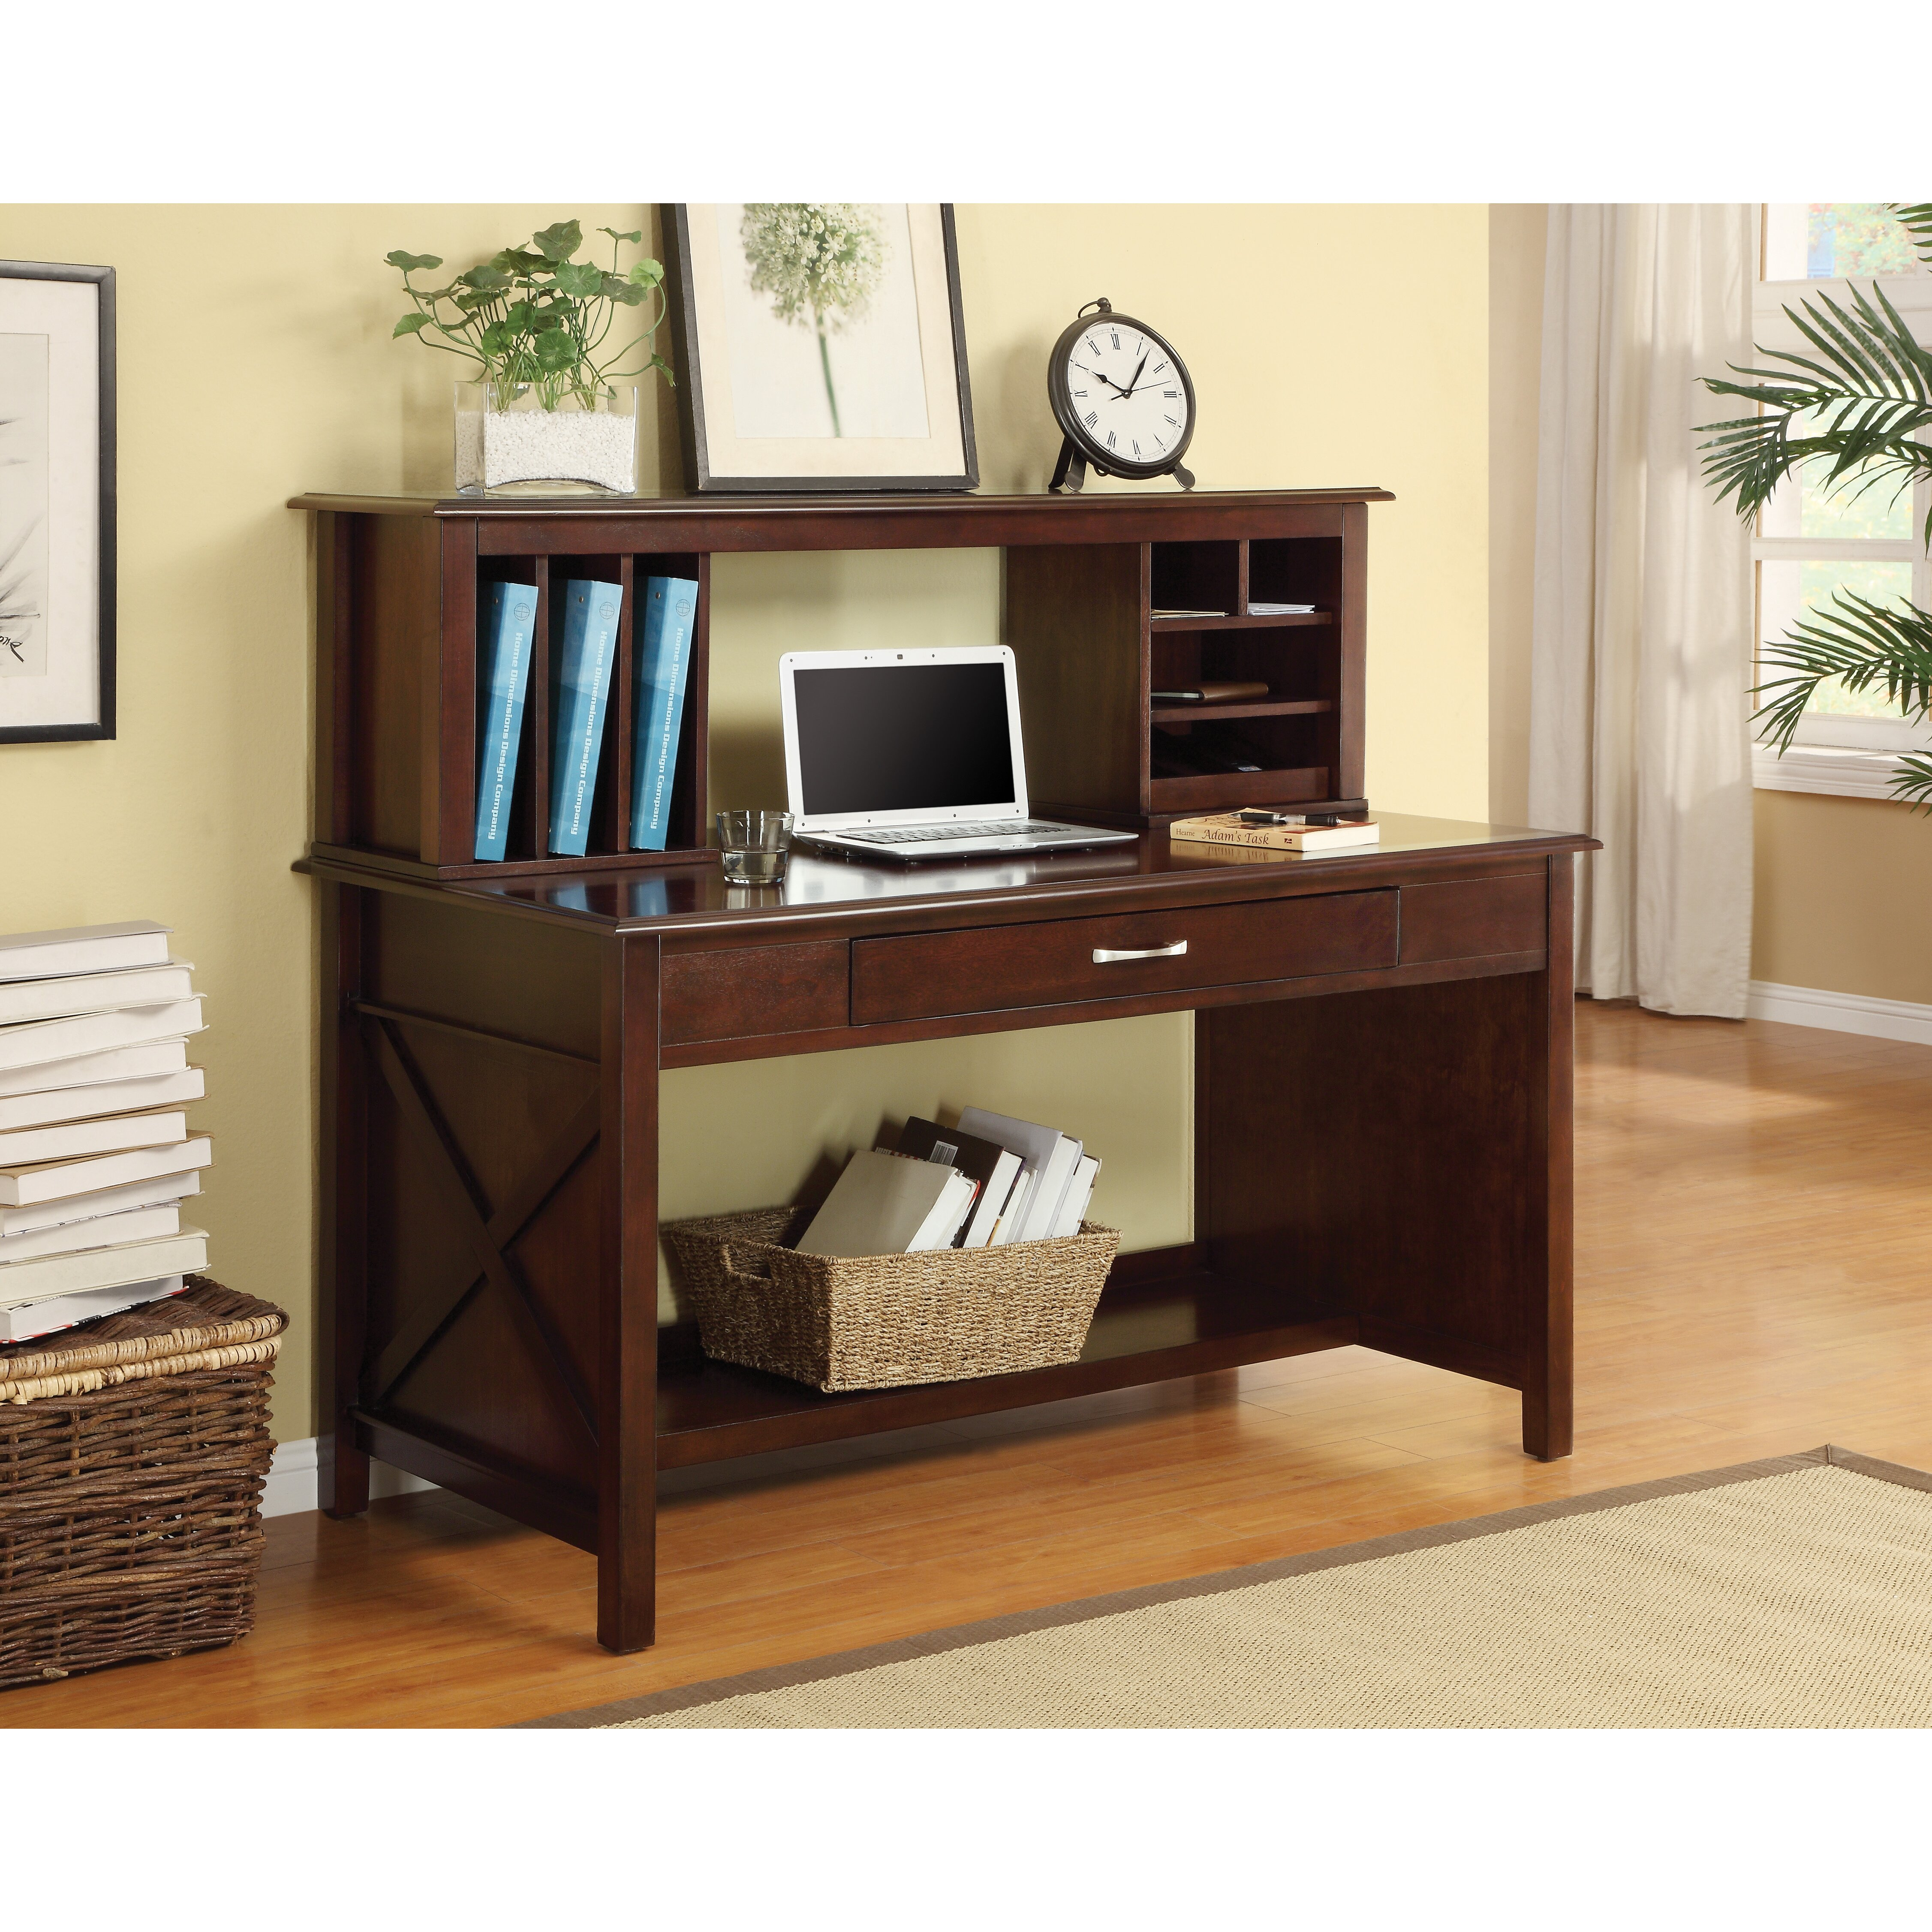 Inspired By Bassett Adeline Writing Desk With Hutch